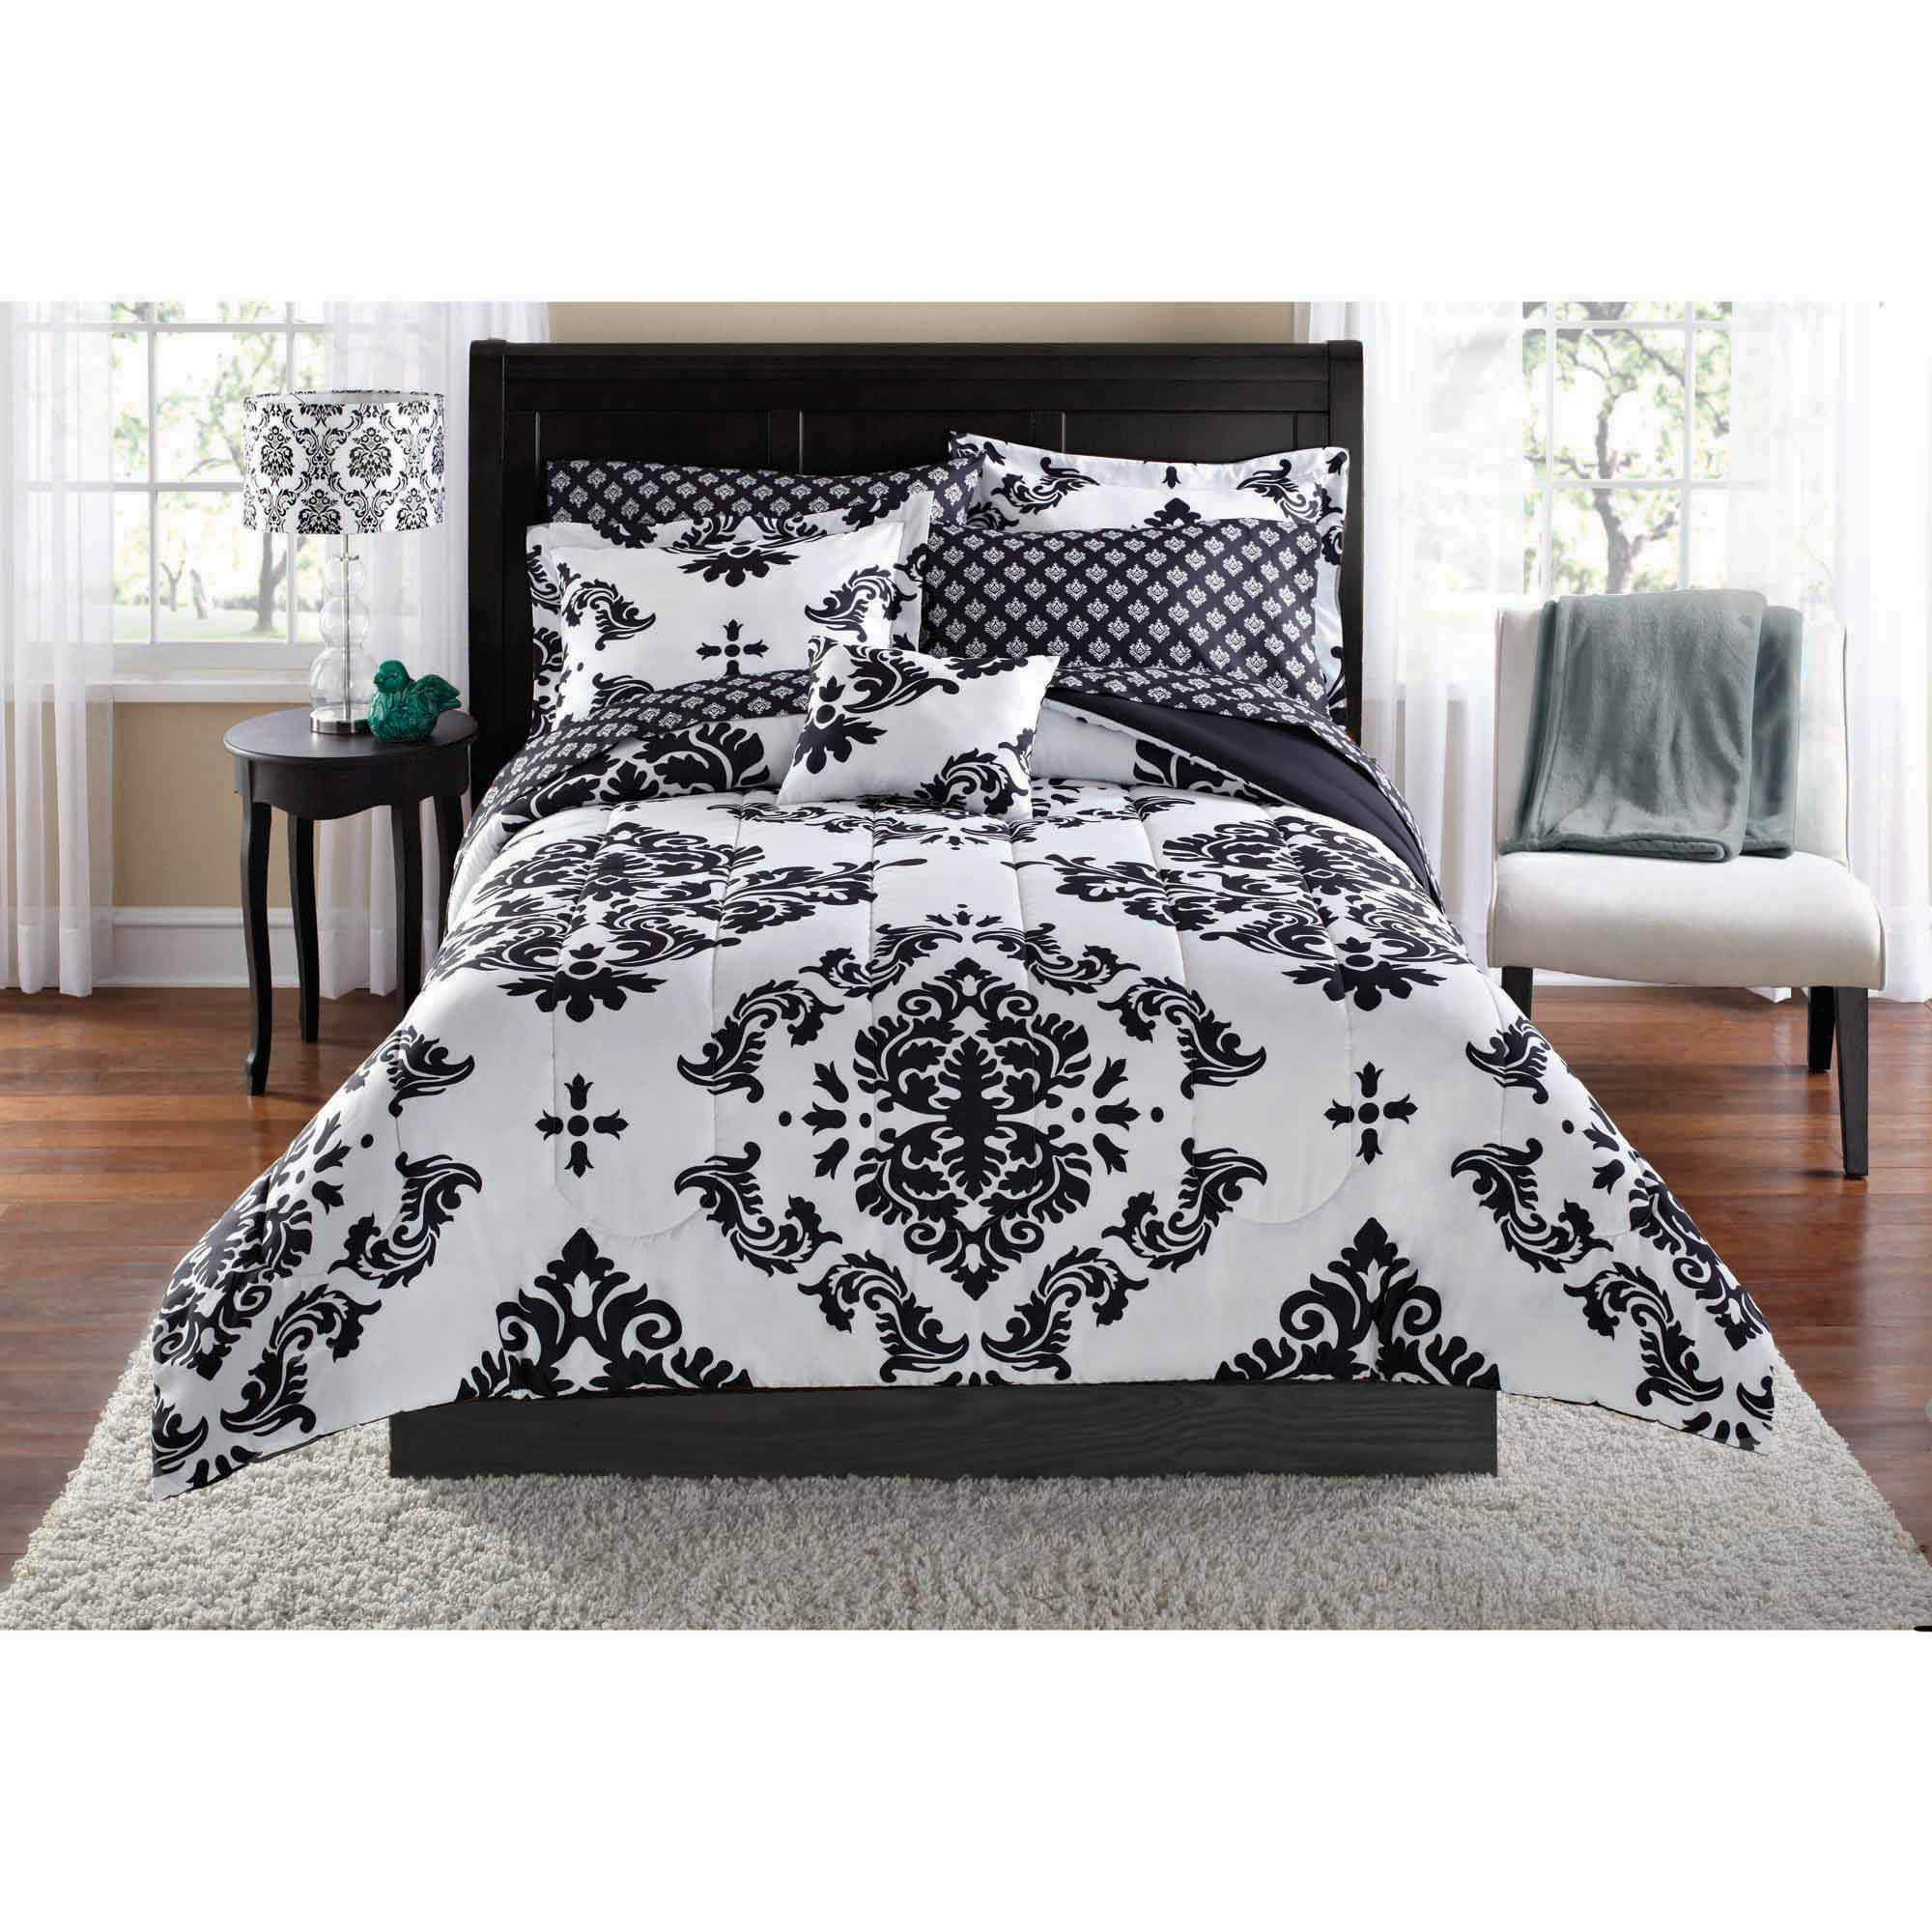 Mainstays Classic Noir Black Bed In A Bag Coordinating Bedding Twin Xl